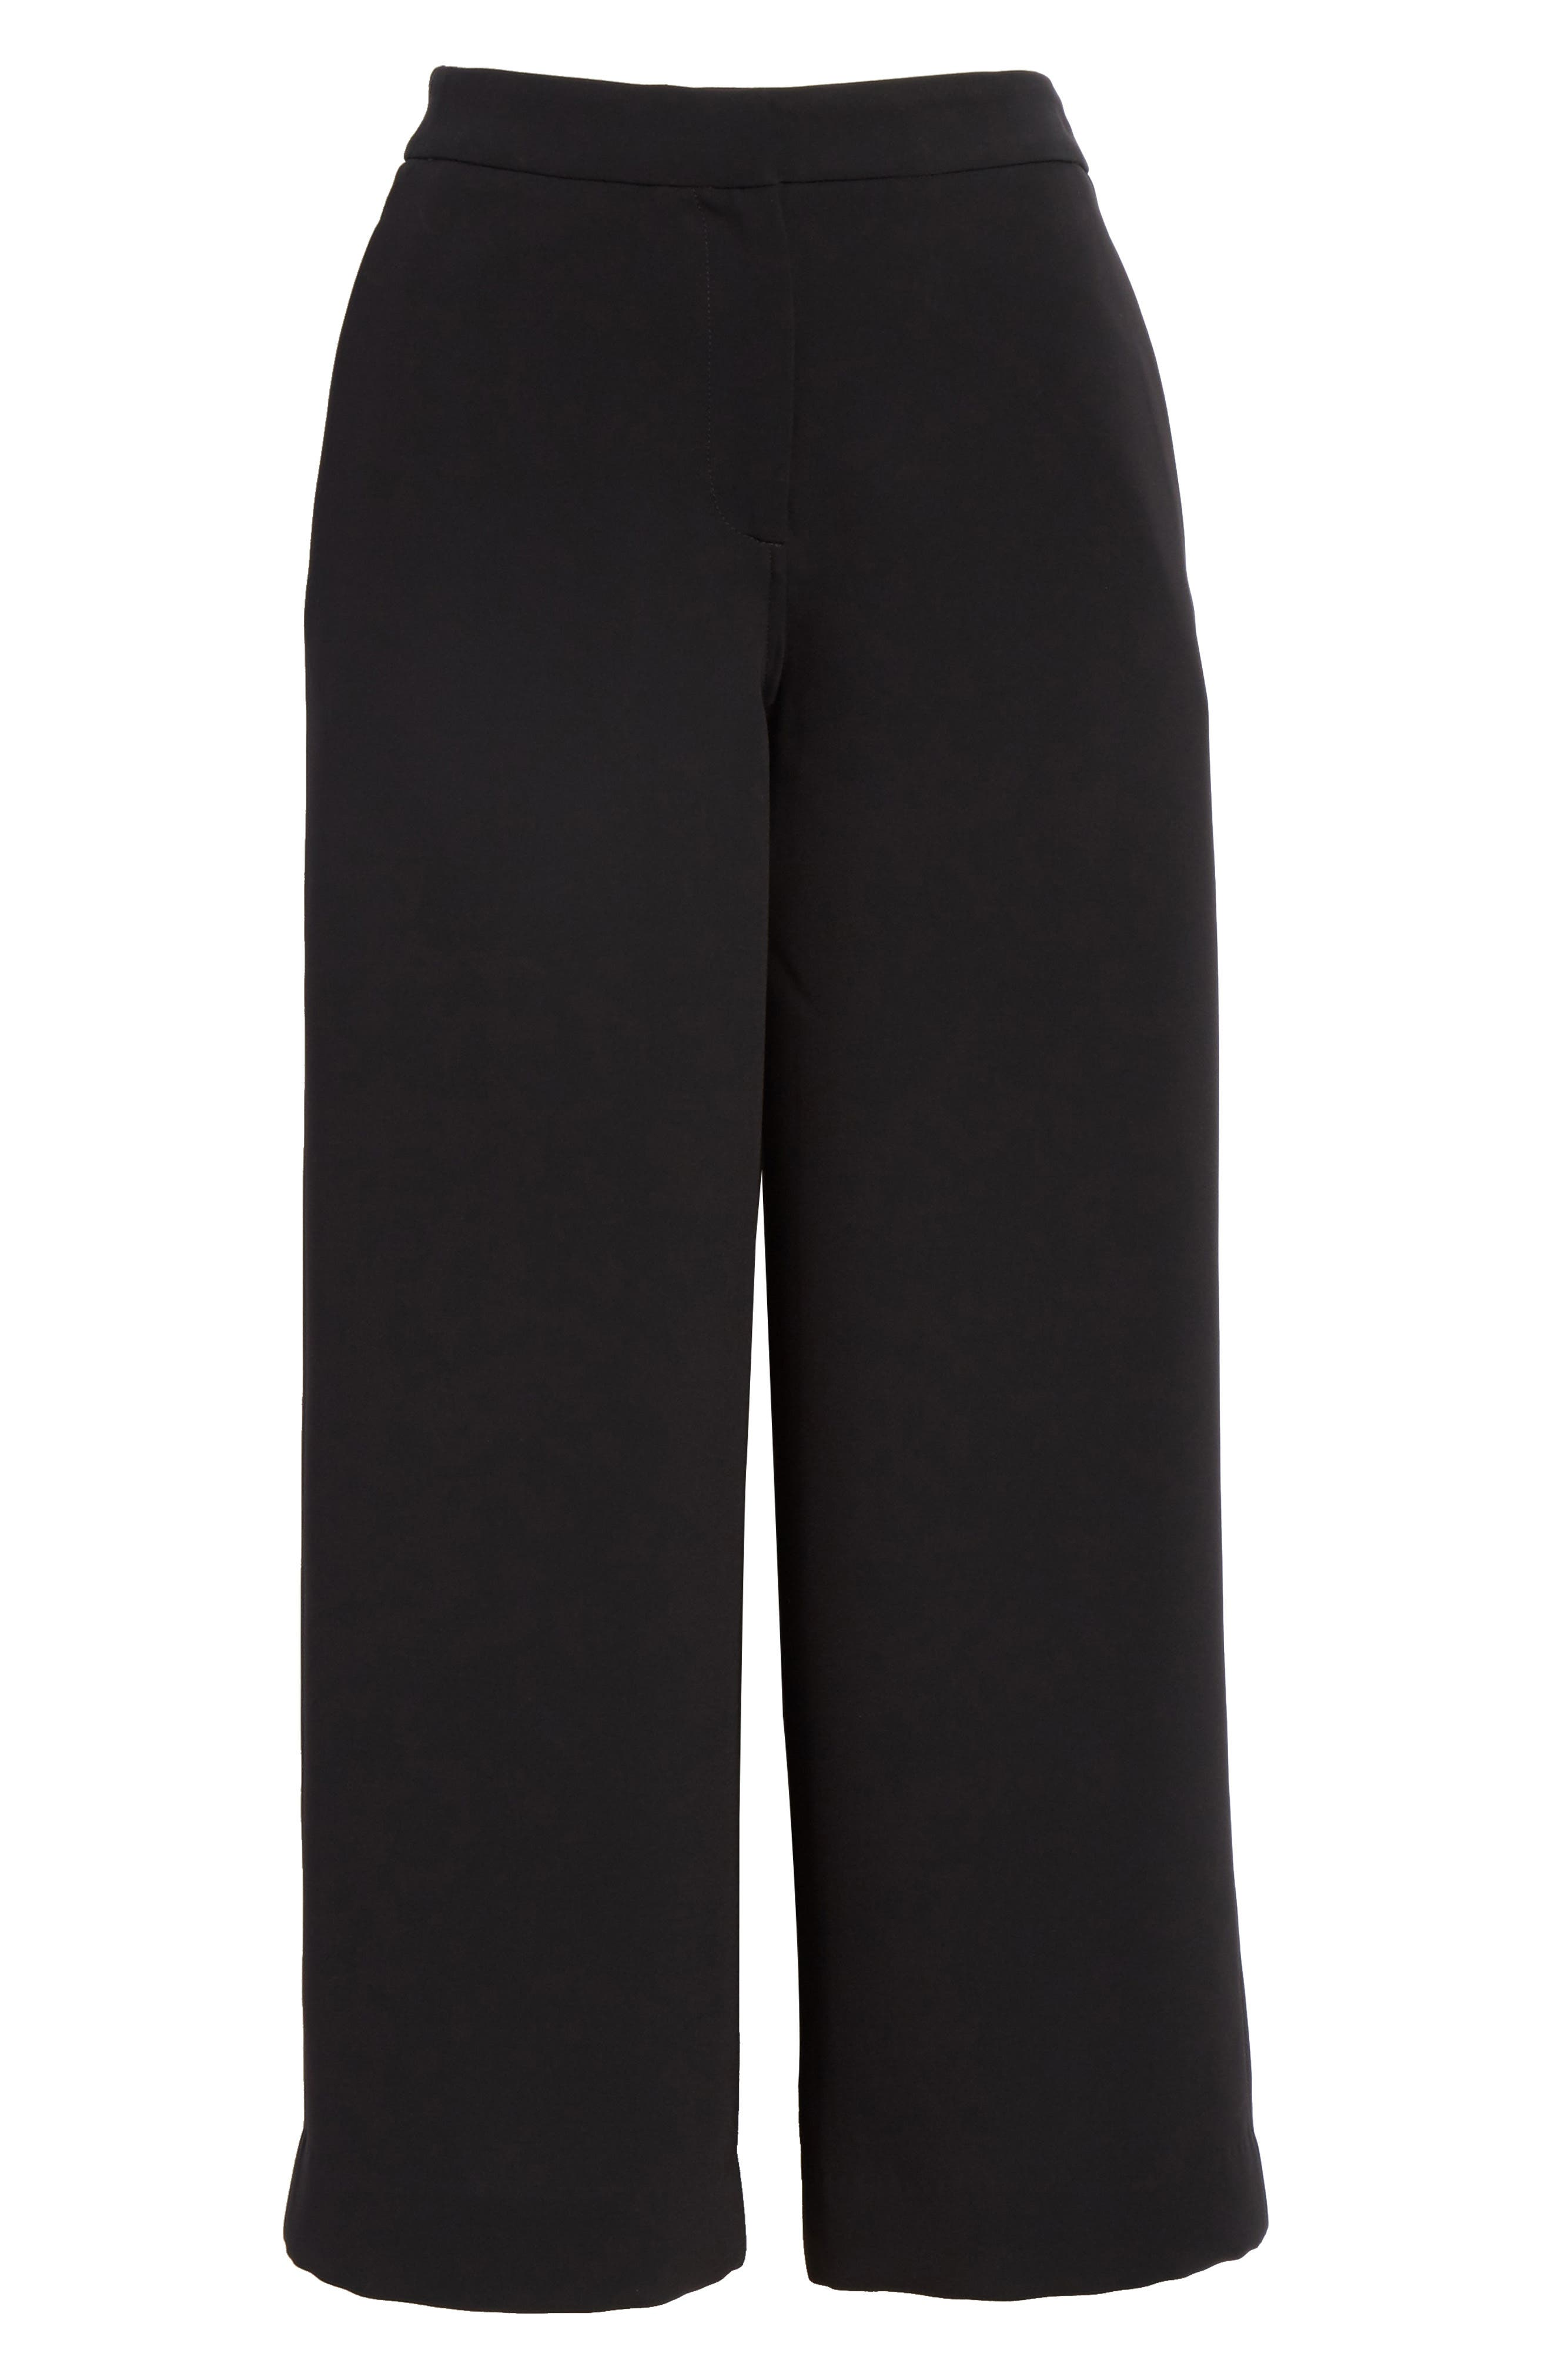 Marci Wide Leg Crop Pants,                             Alternate thumbnail 6, color,                             001